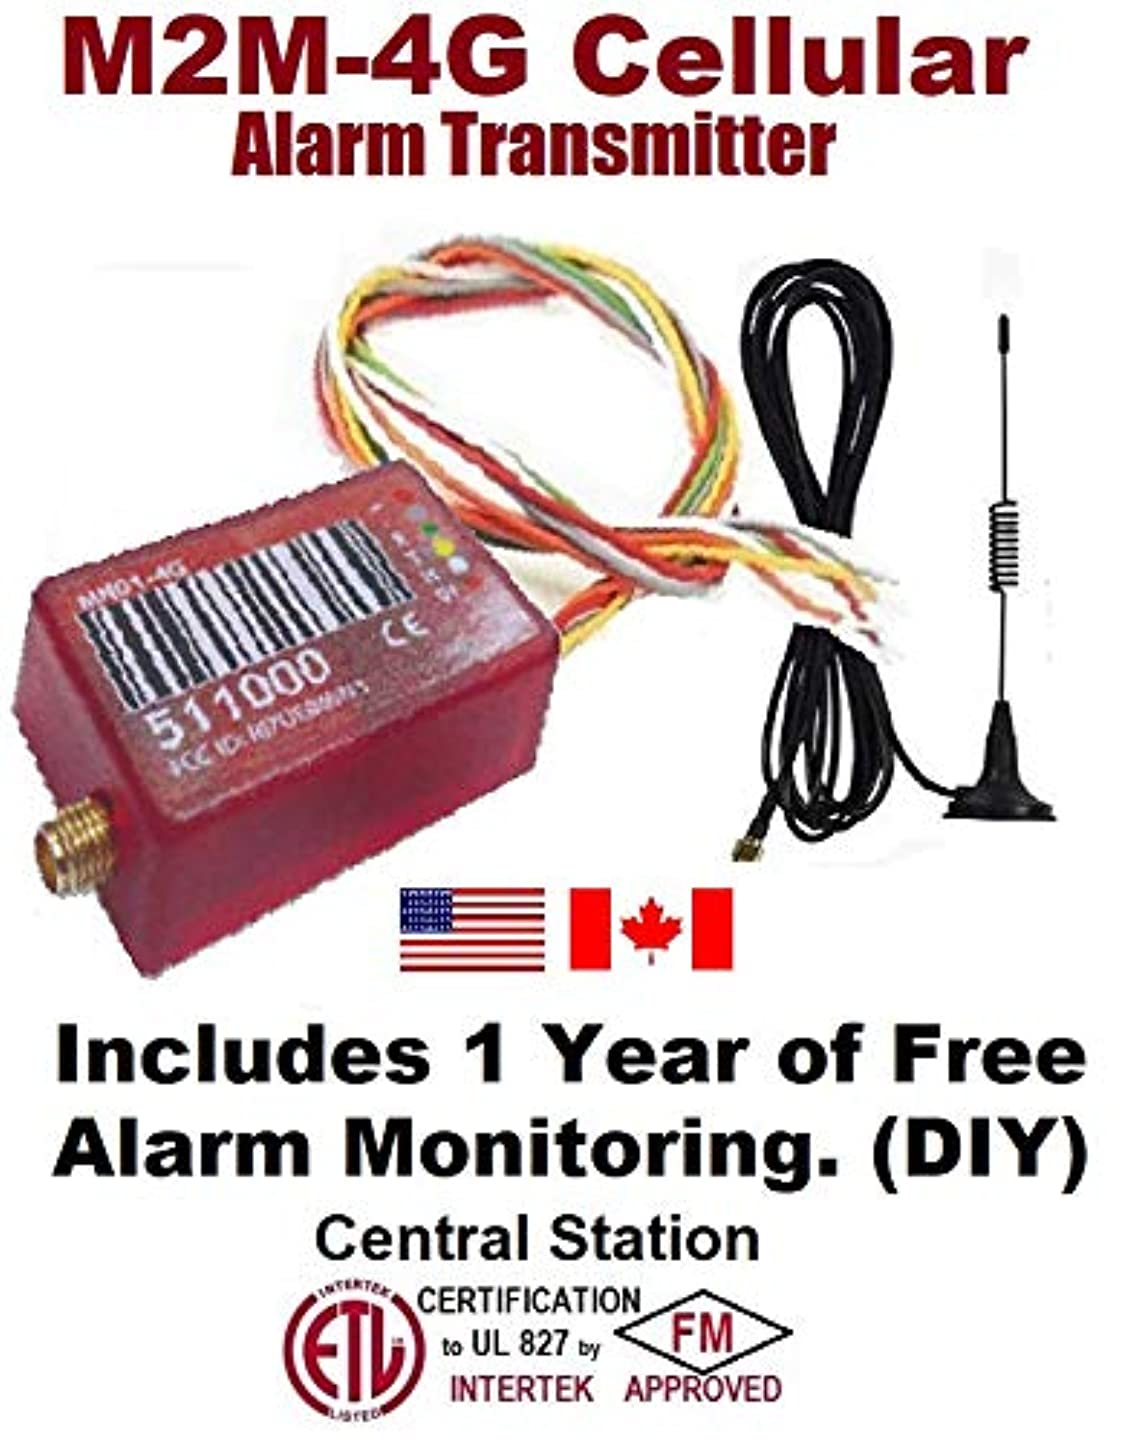 VirtuAlarm M2M-4G Cellular Alarm Transmitter with Free Alarm Monitoring Included.